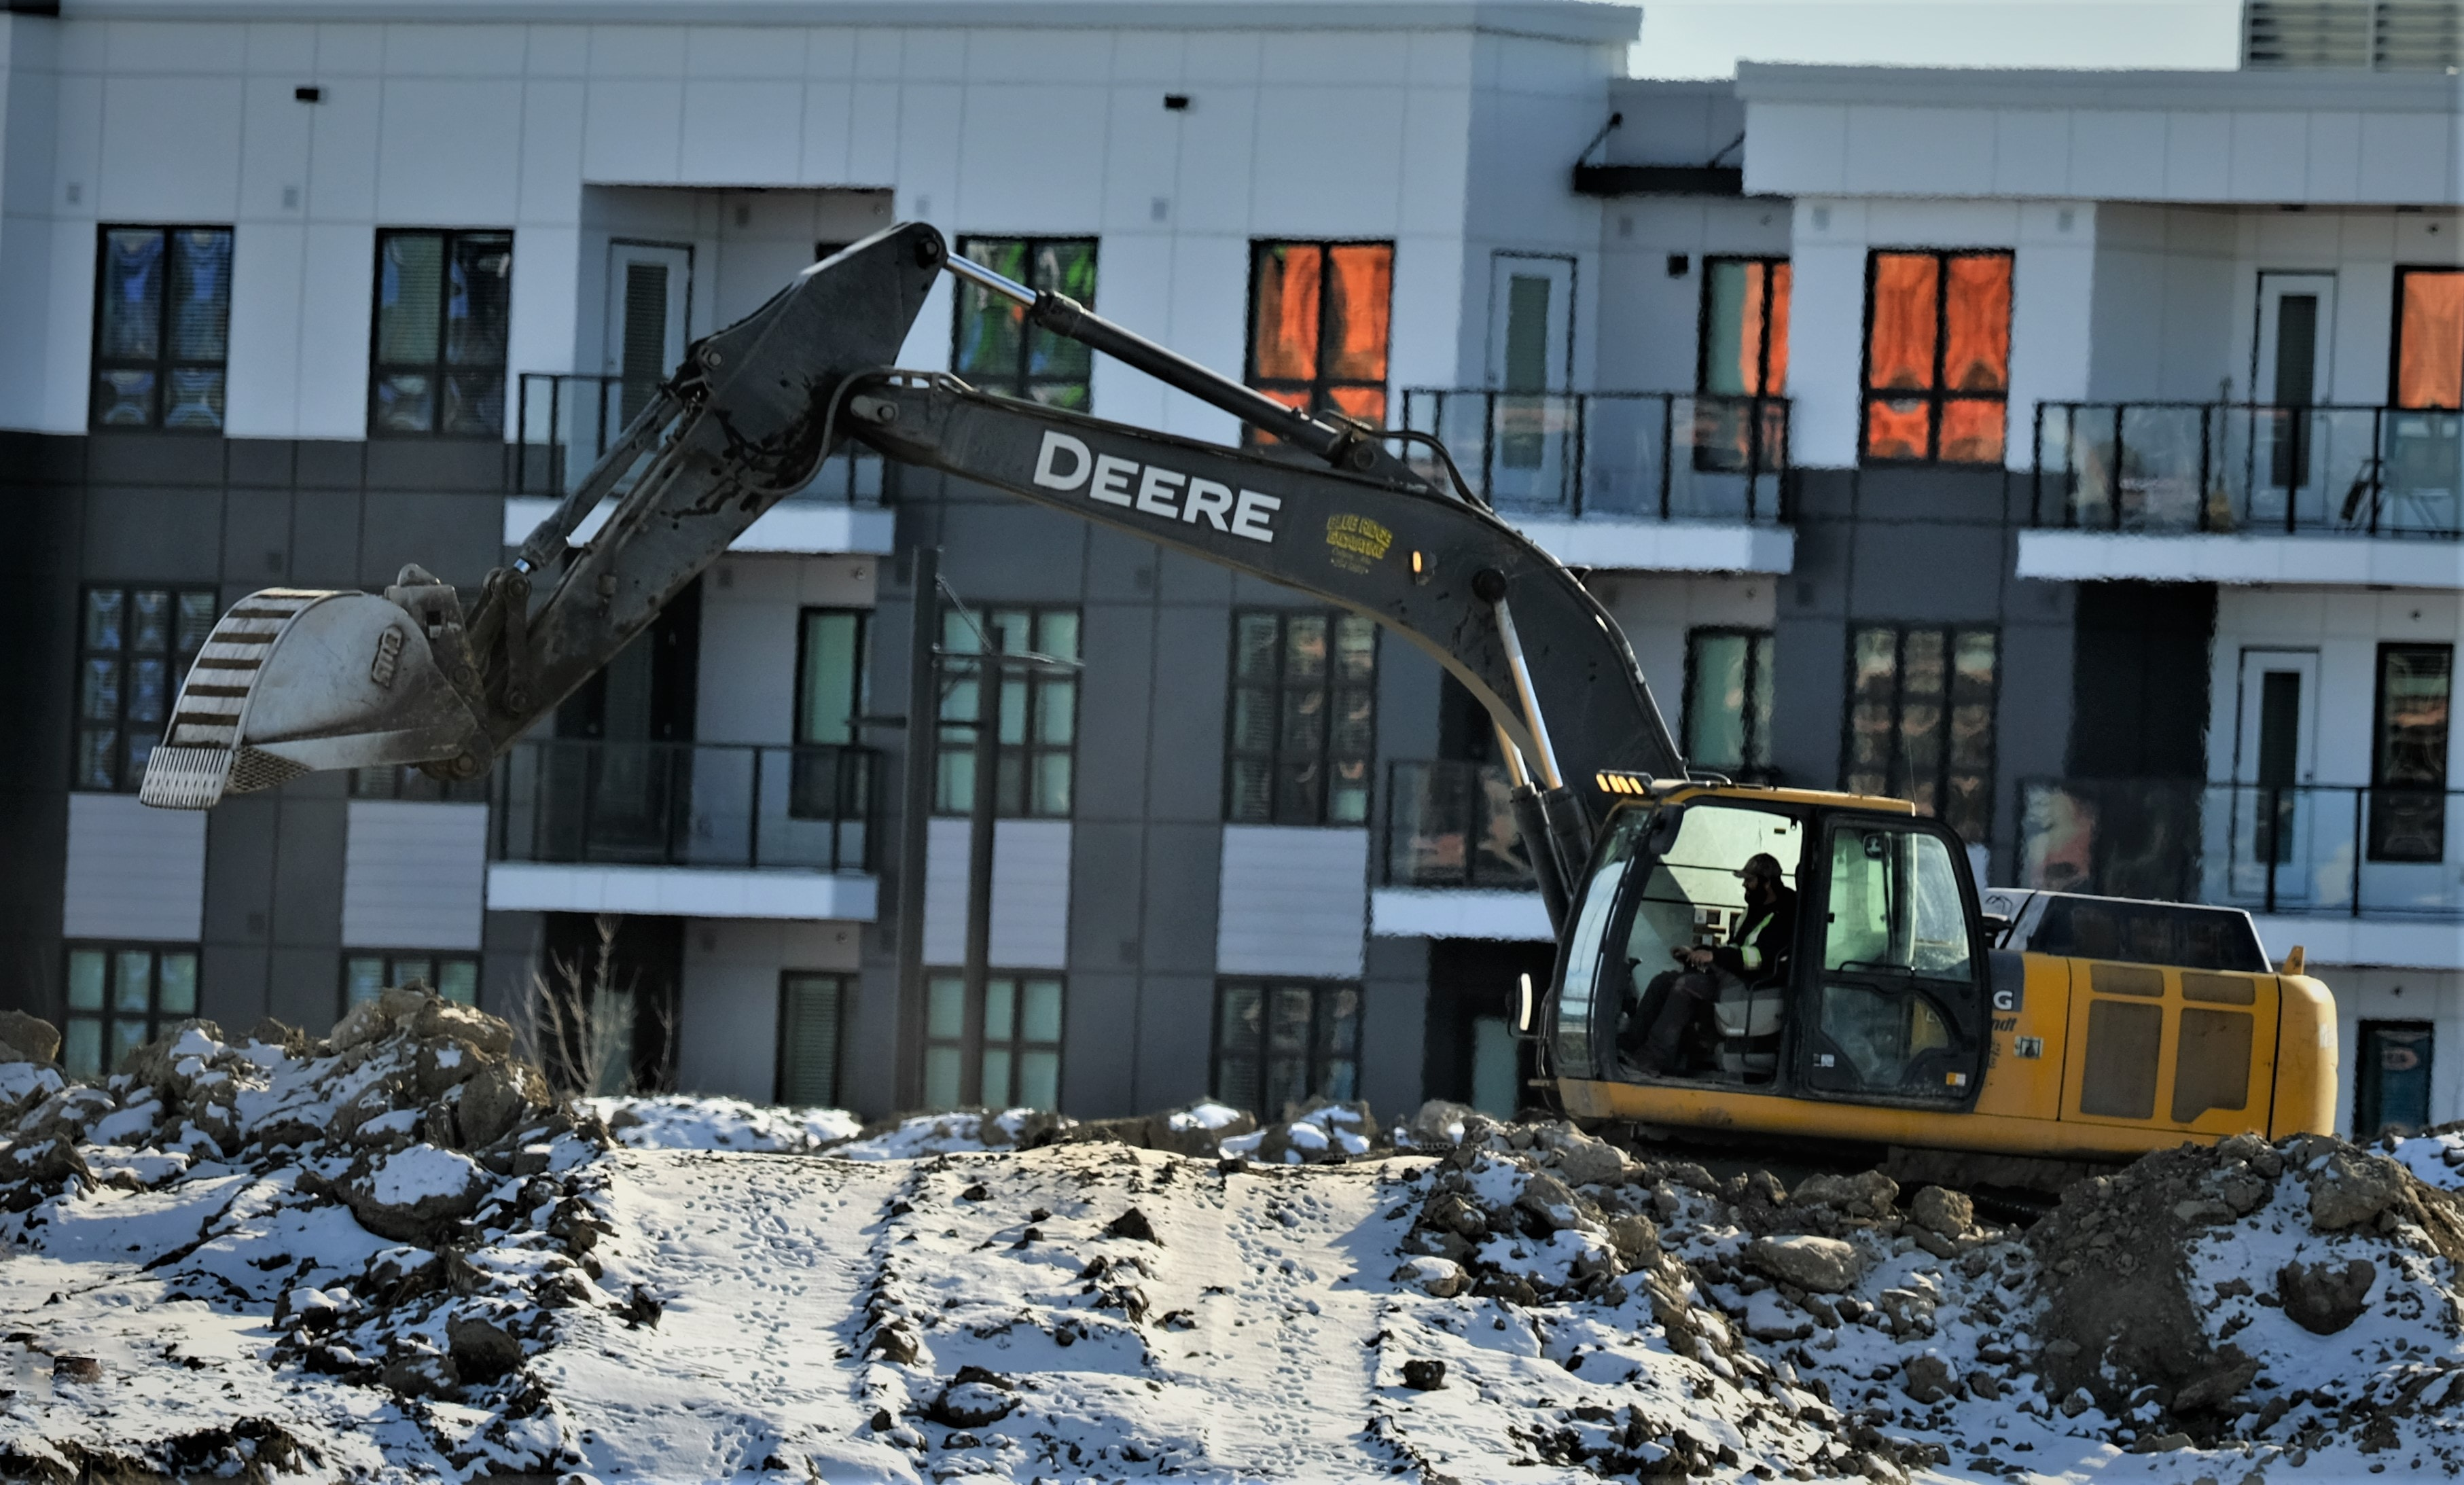 yellow and black excavator on snow covered ground near building during daytime